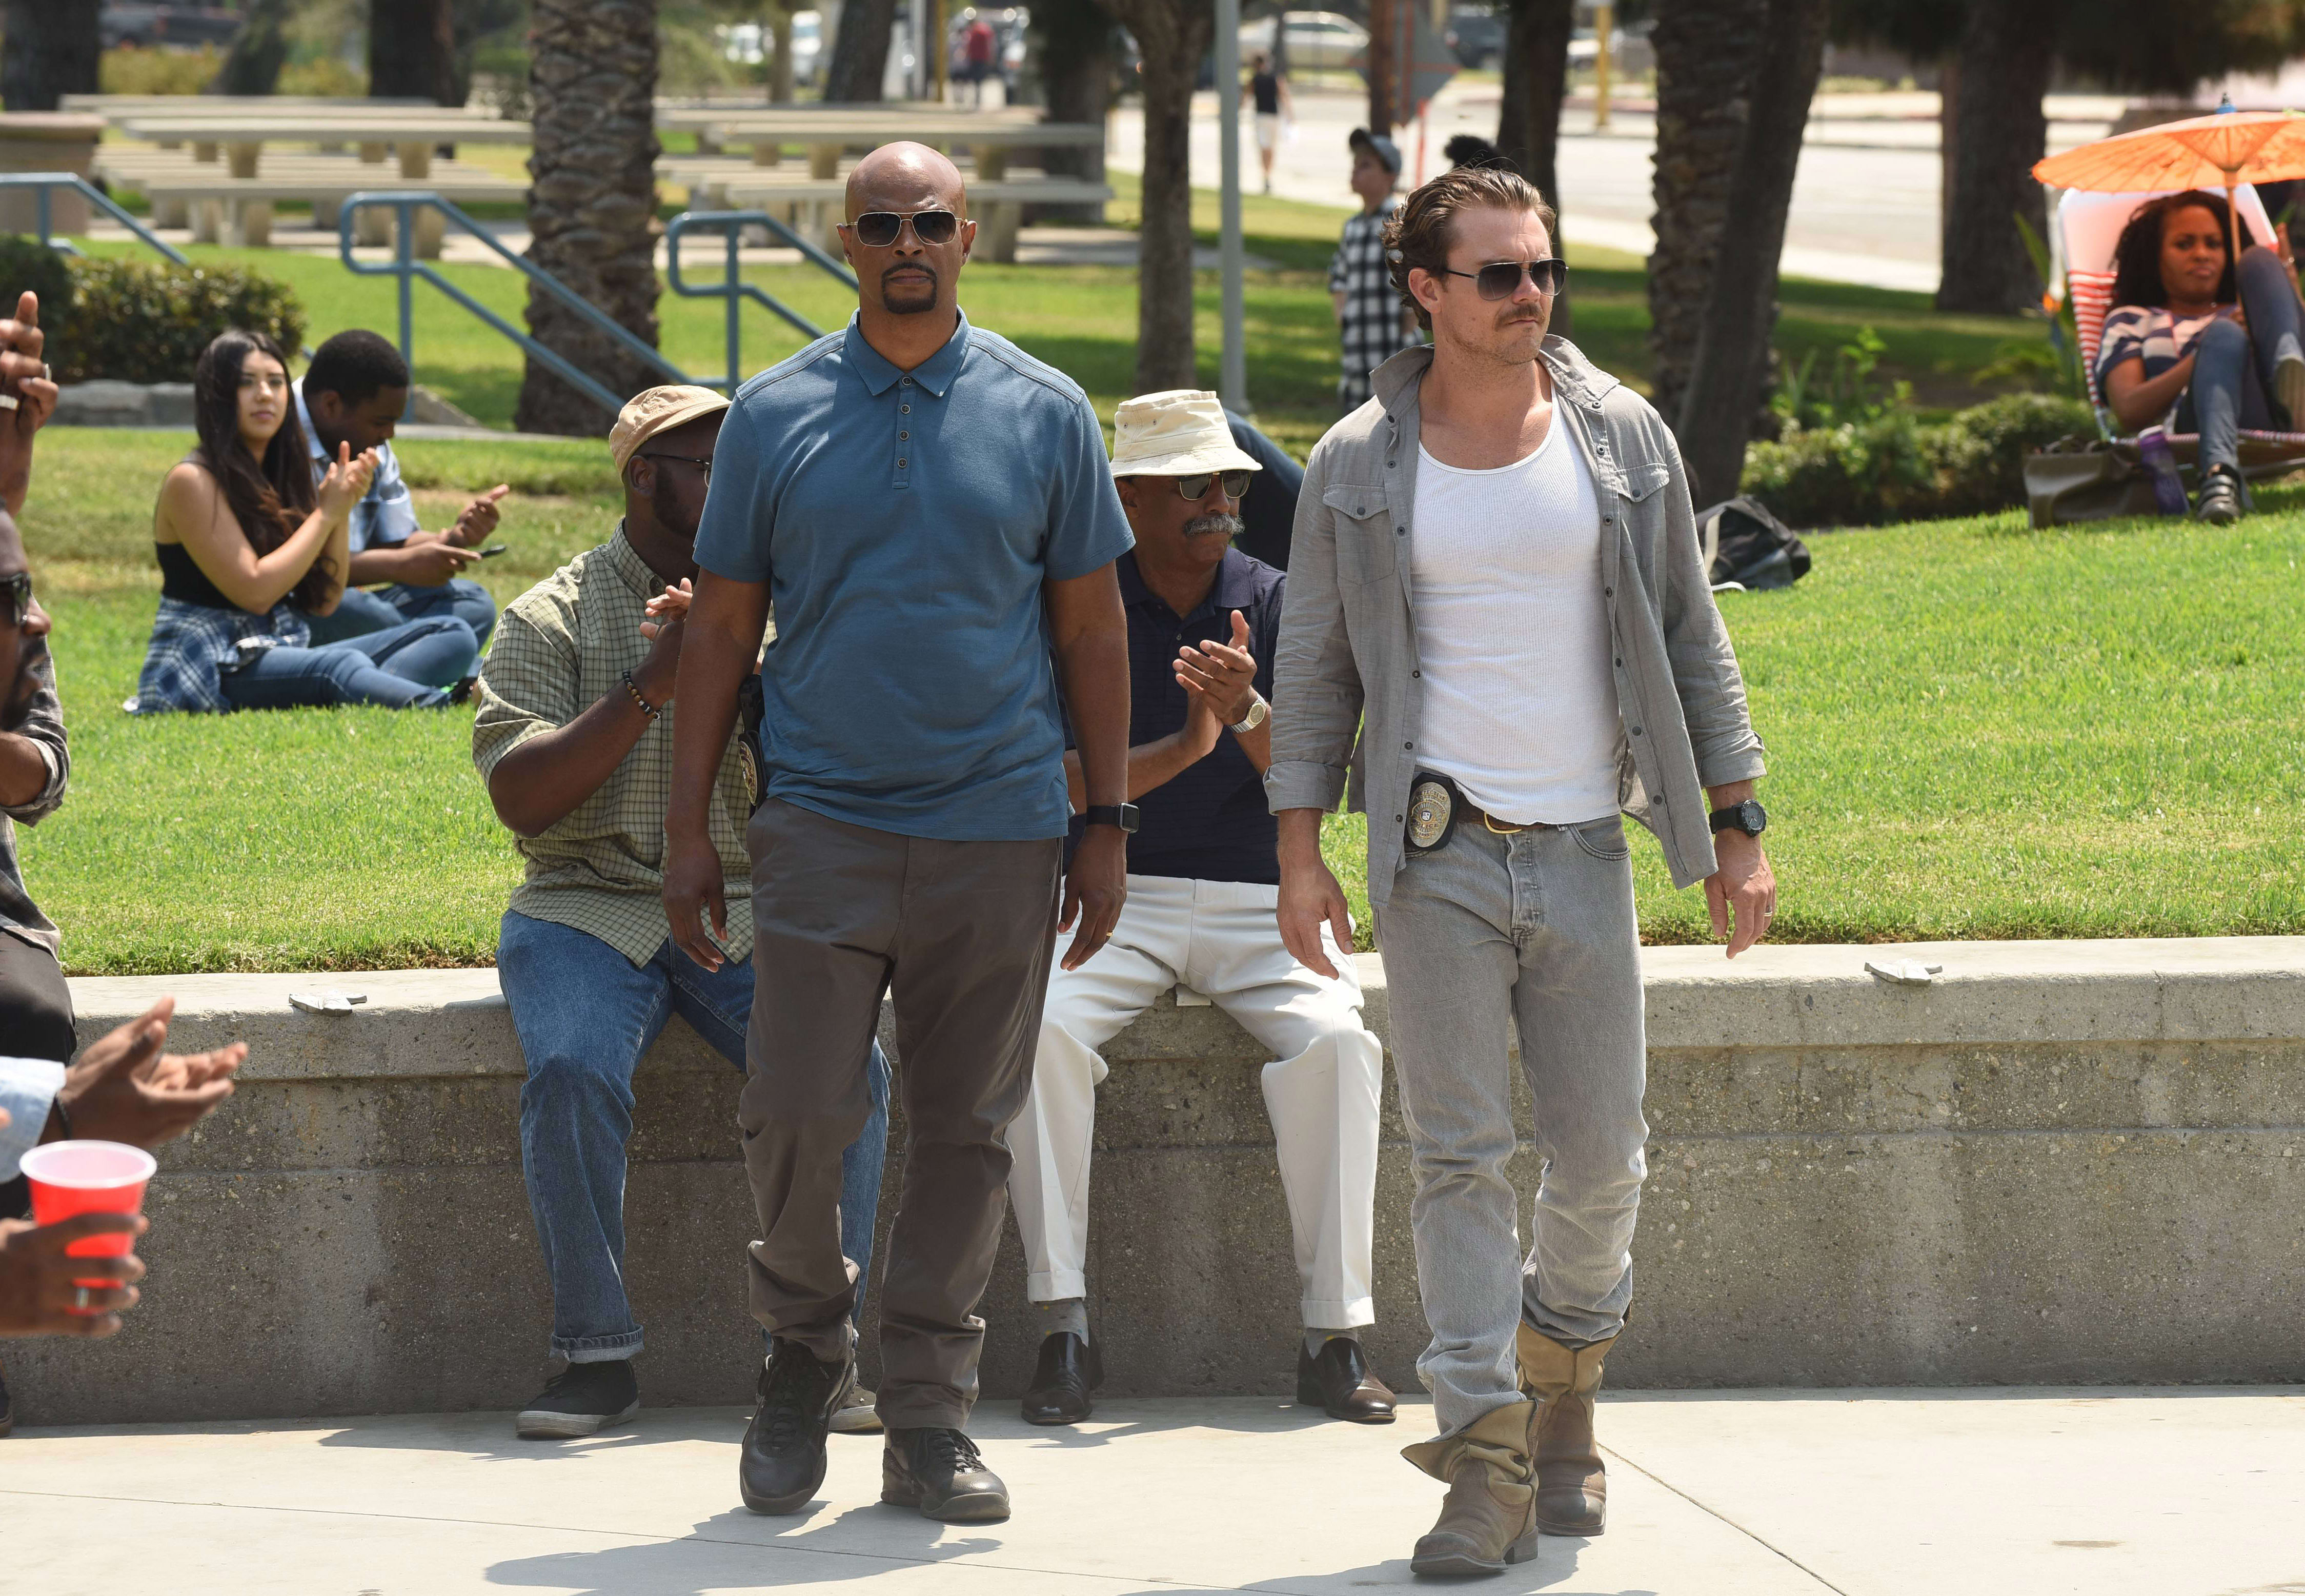 Rush season 1 episode 10 2014 - Lethal Weapon Season 1 Episode 4 Review There Goes The Neighborhood Tv Fanatic